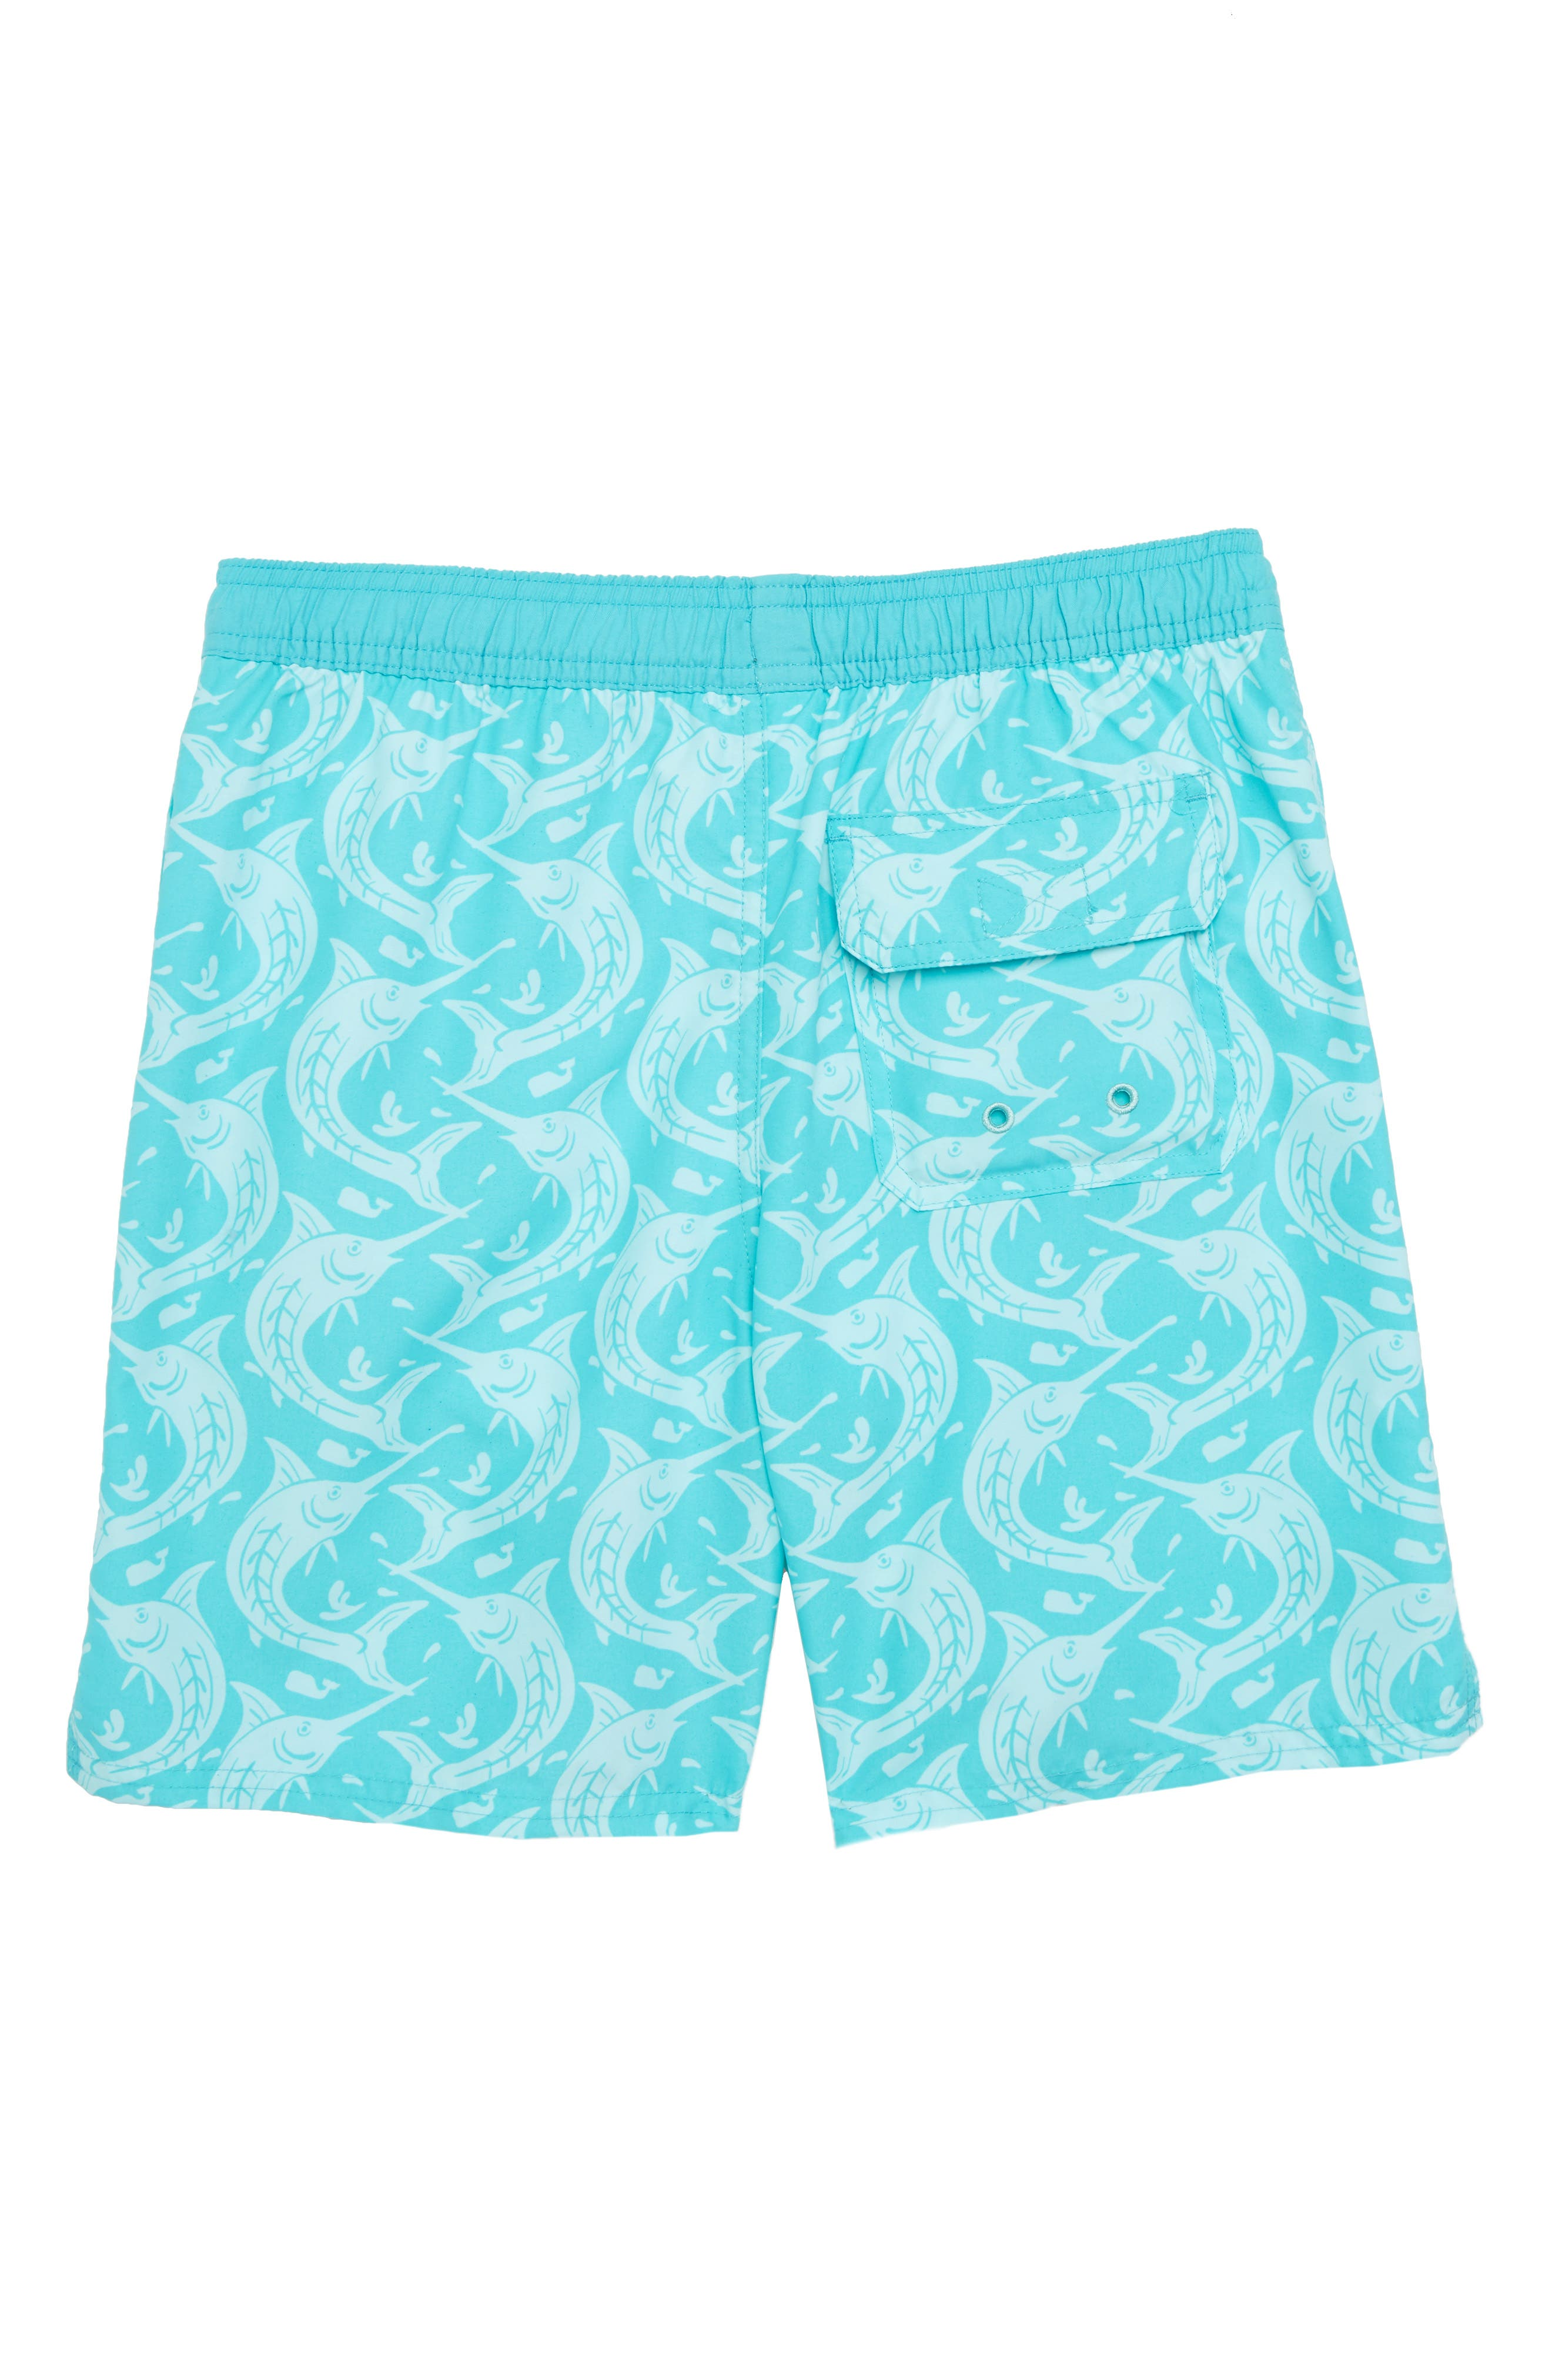 Marlin Out of Water Swim Trunks,                             Alternate thumbnail 2, color,                             440